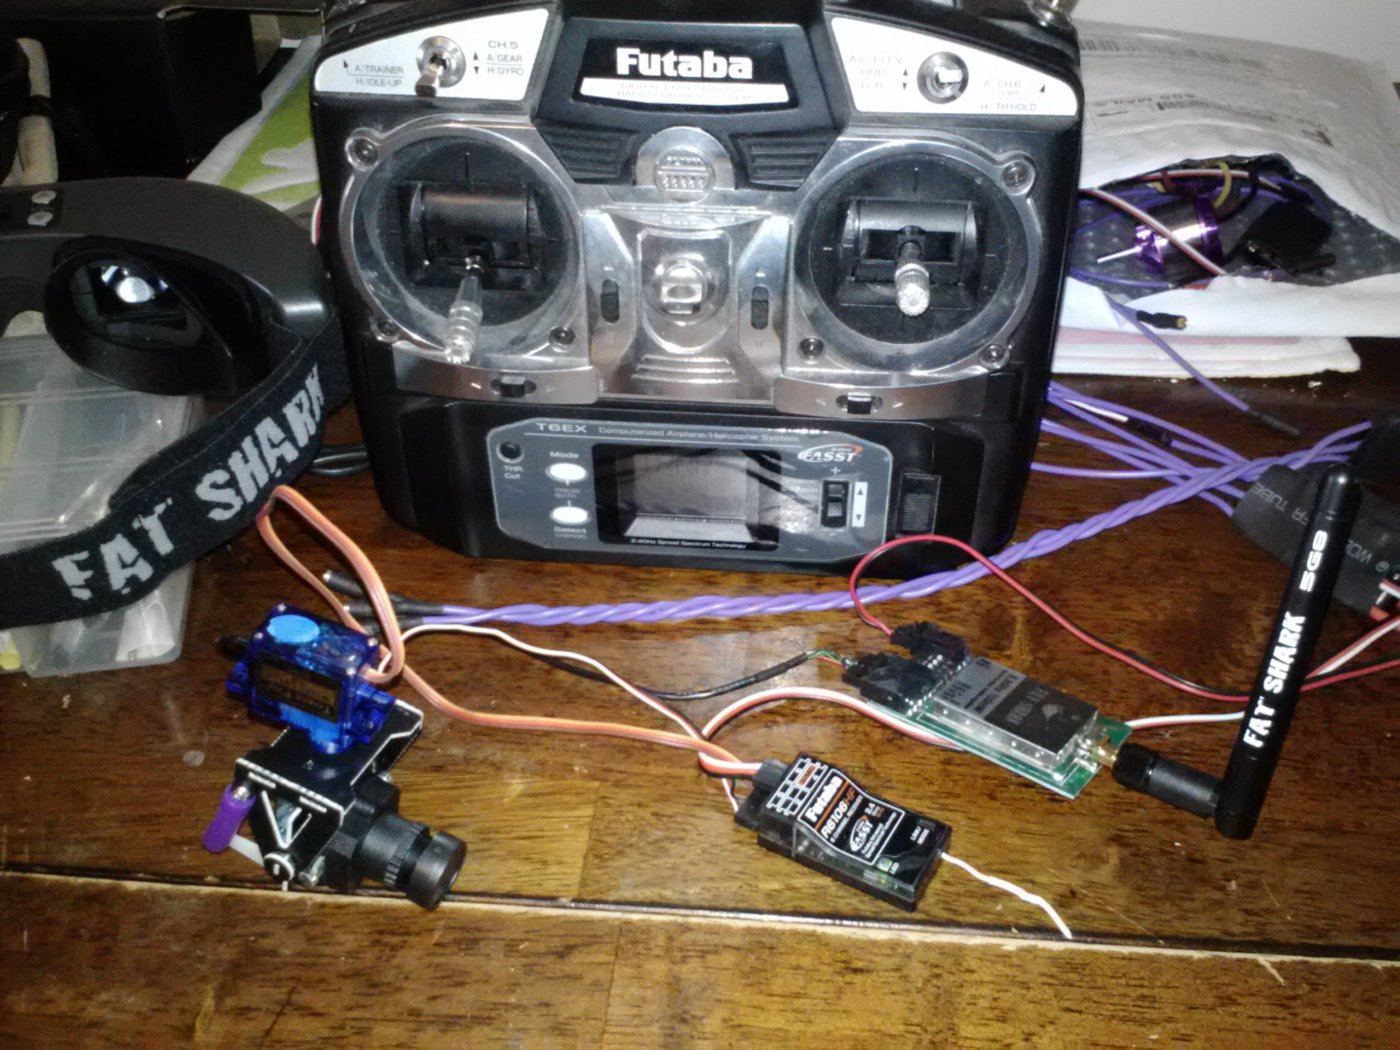 DIY Head Tracking  Video goggle s FAT SHARK With Head Tracking DIY Drones